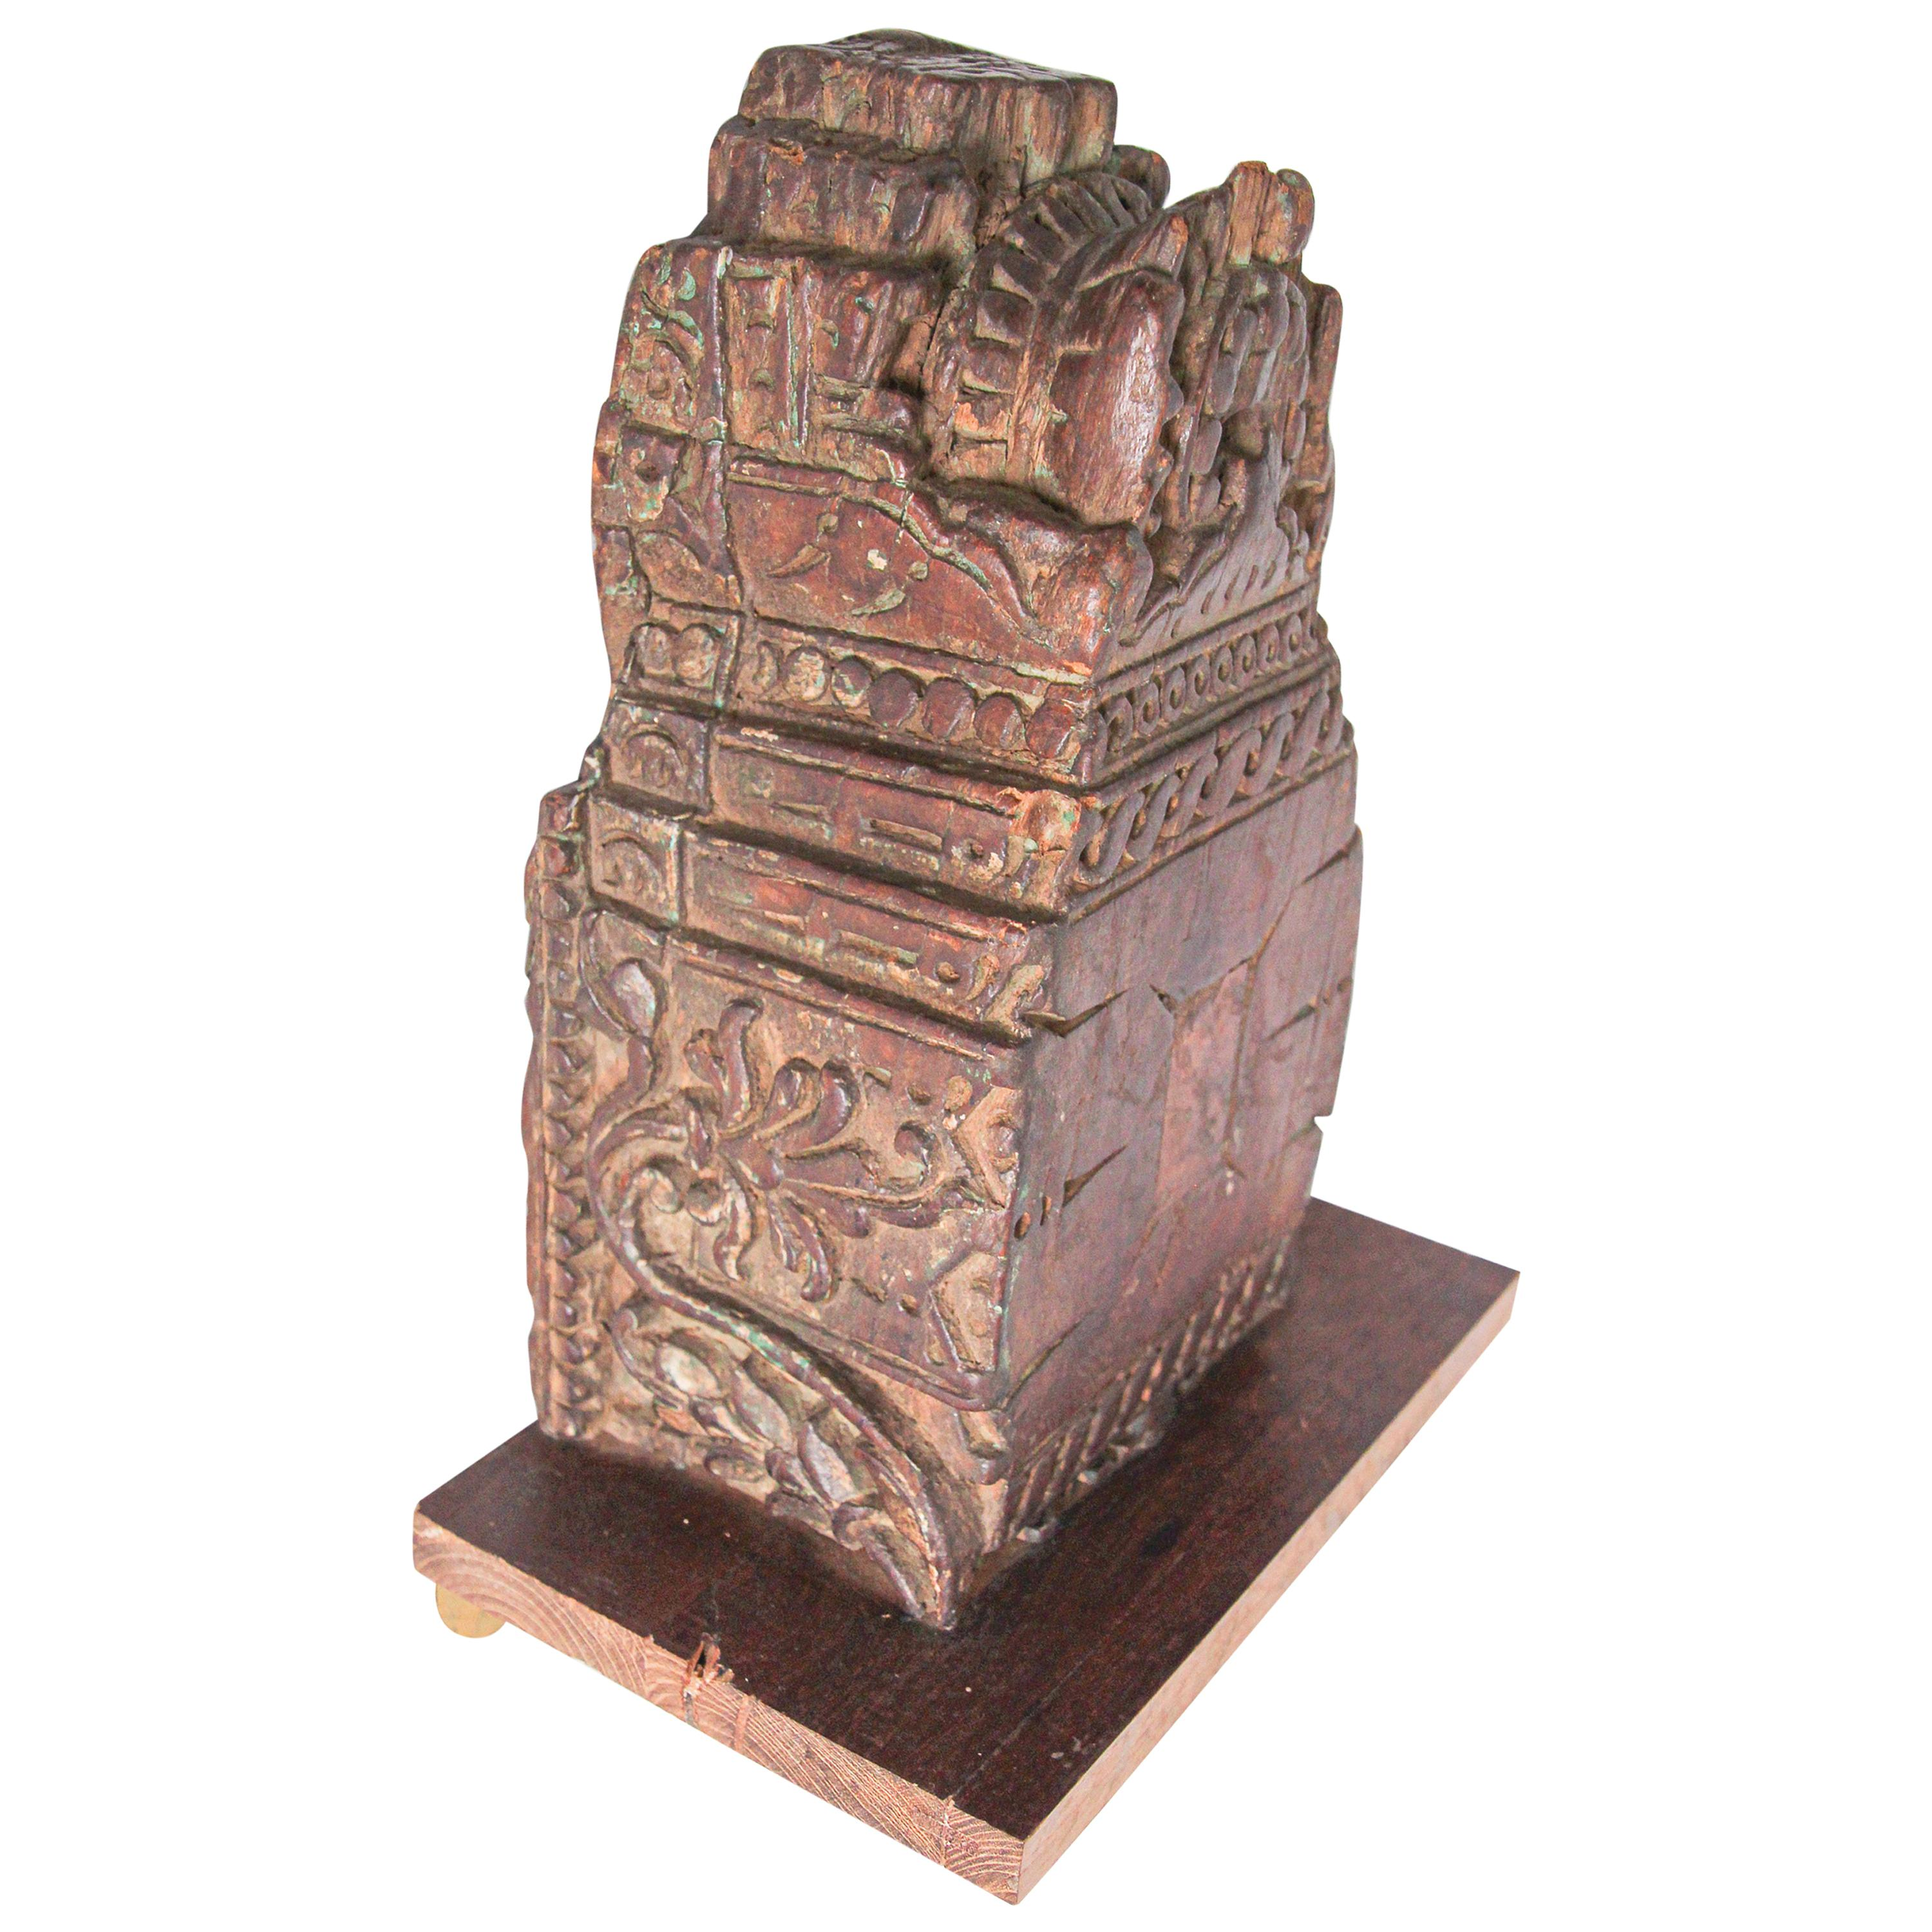 Wall Bracket Architectural Carved Wood Fragment from India